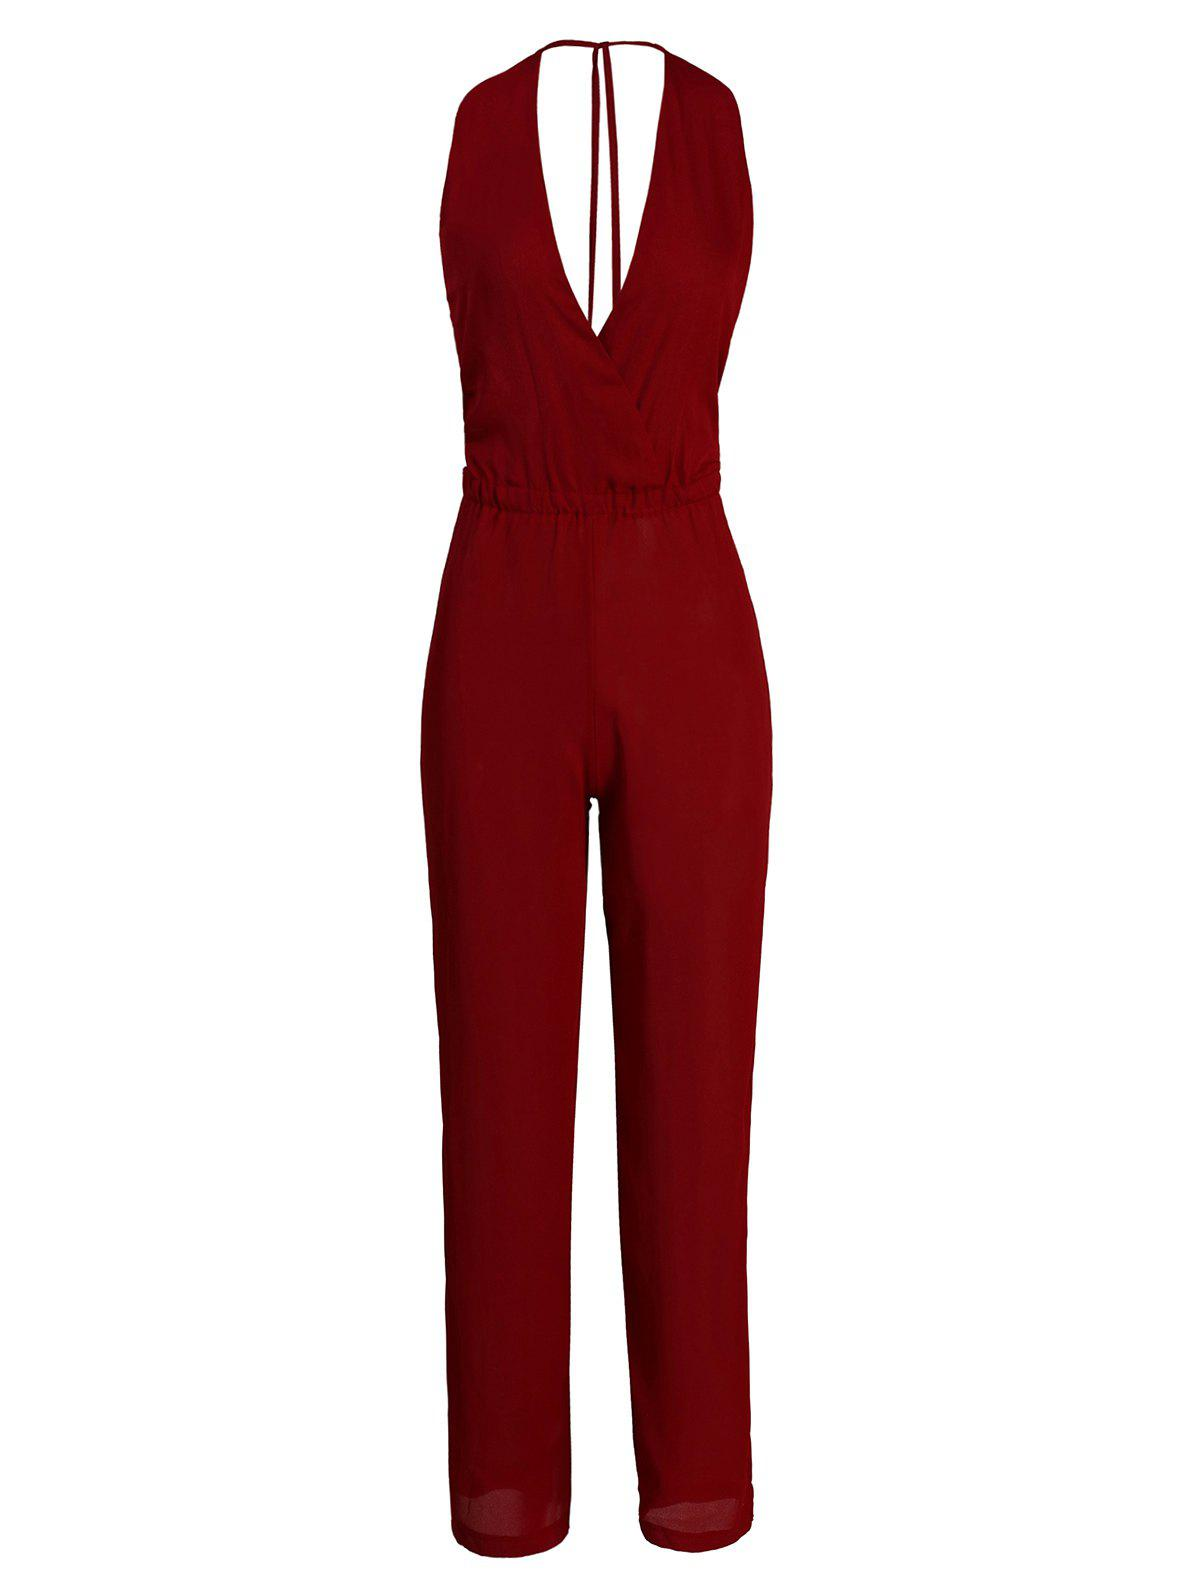 Fashionable jumpsuits for women 78